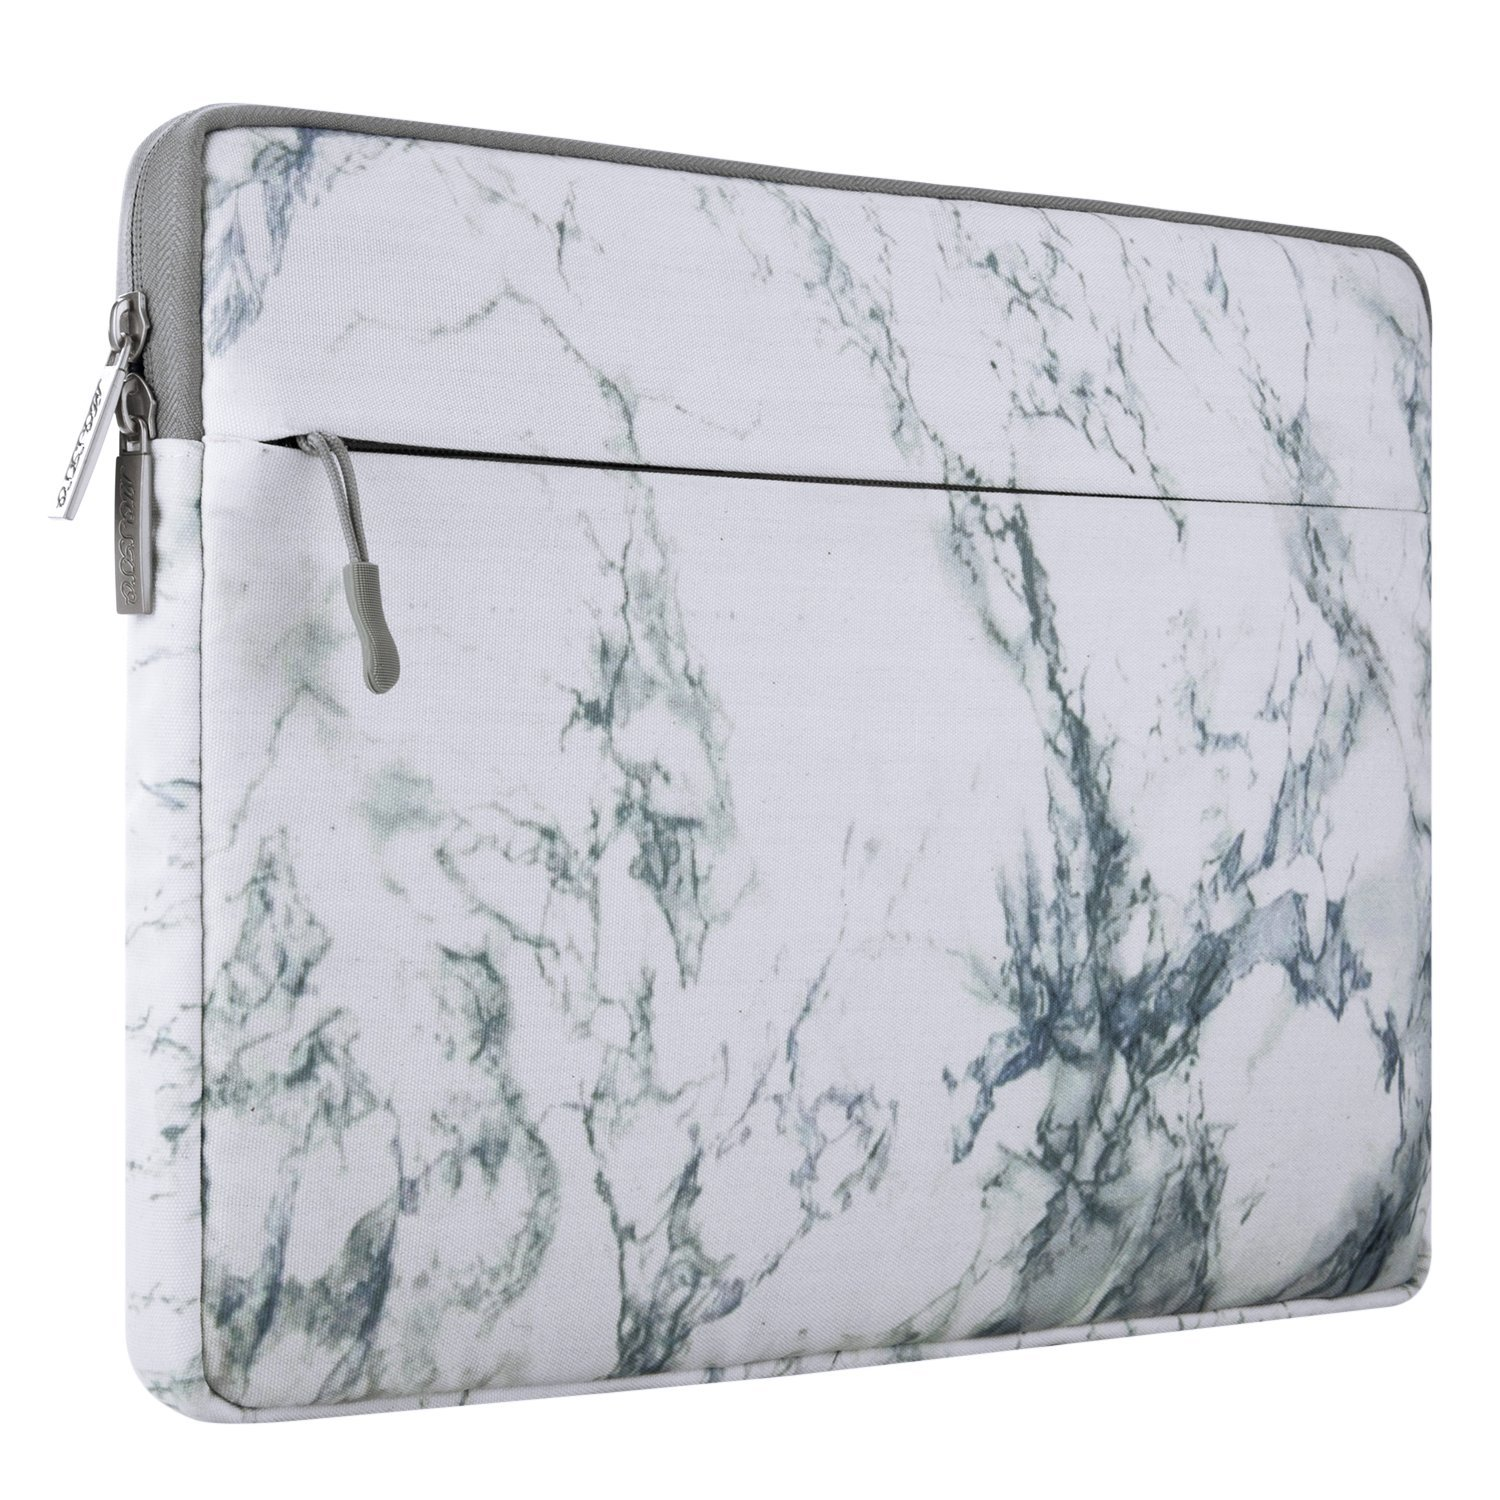 Mosiso Canvas Fabric Laptop Sleeve Case Bag Cover for 13-13.3 Inch MacBook Pro, MacBook Air, Notebook Computer, Marble Pattern